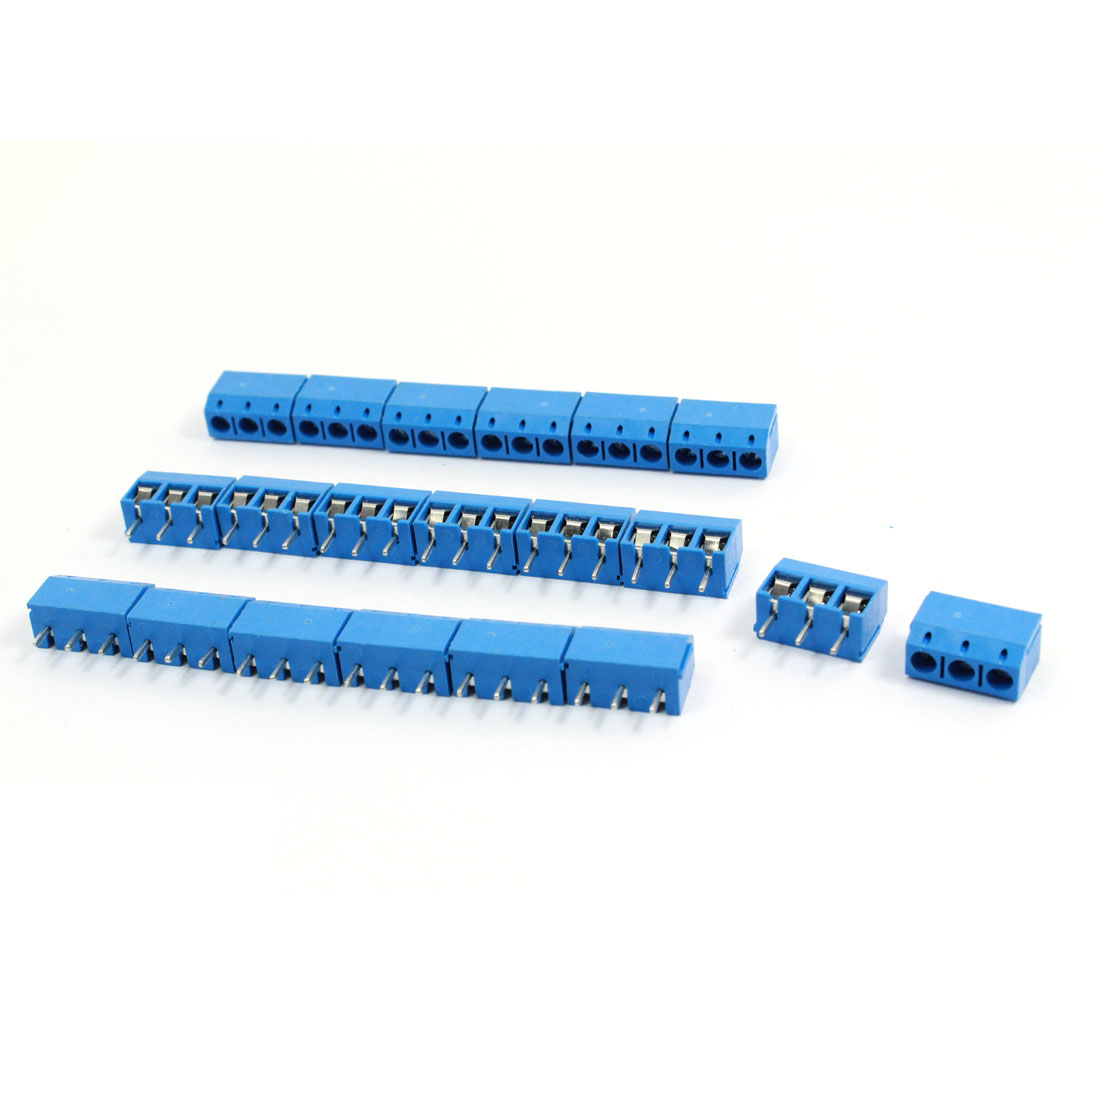 20 Pcs 301-3P 5mm Pitch 3 Pin AC 300V 10A Blue Screw Terminal Block Connector